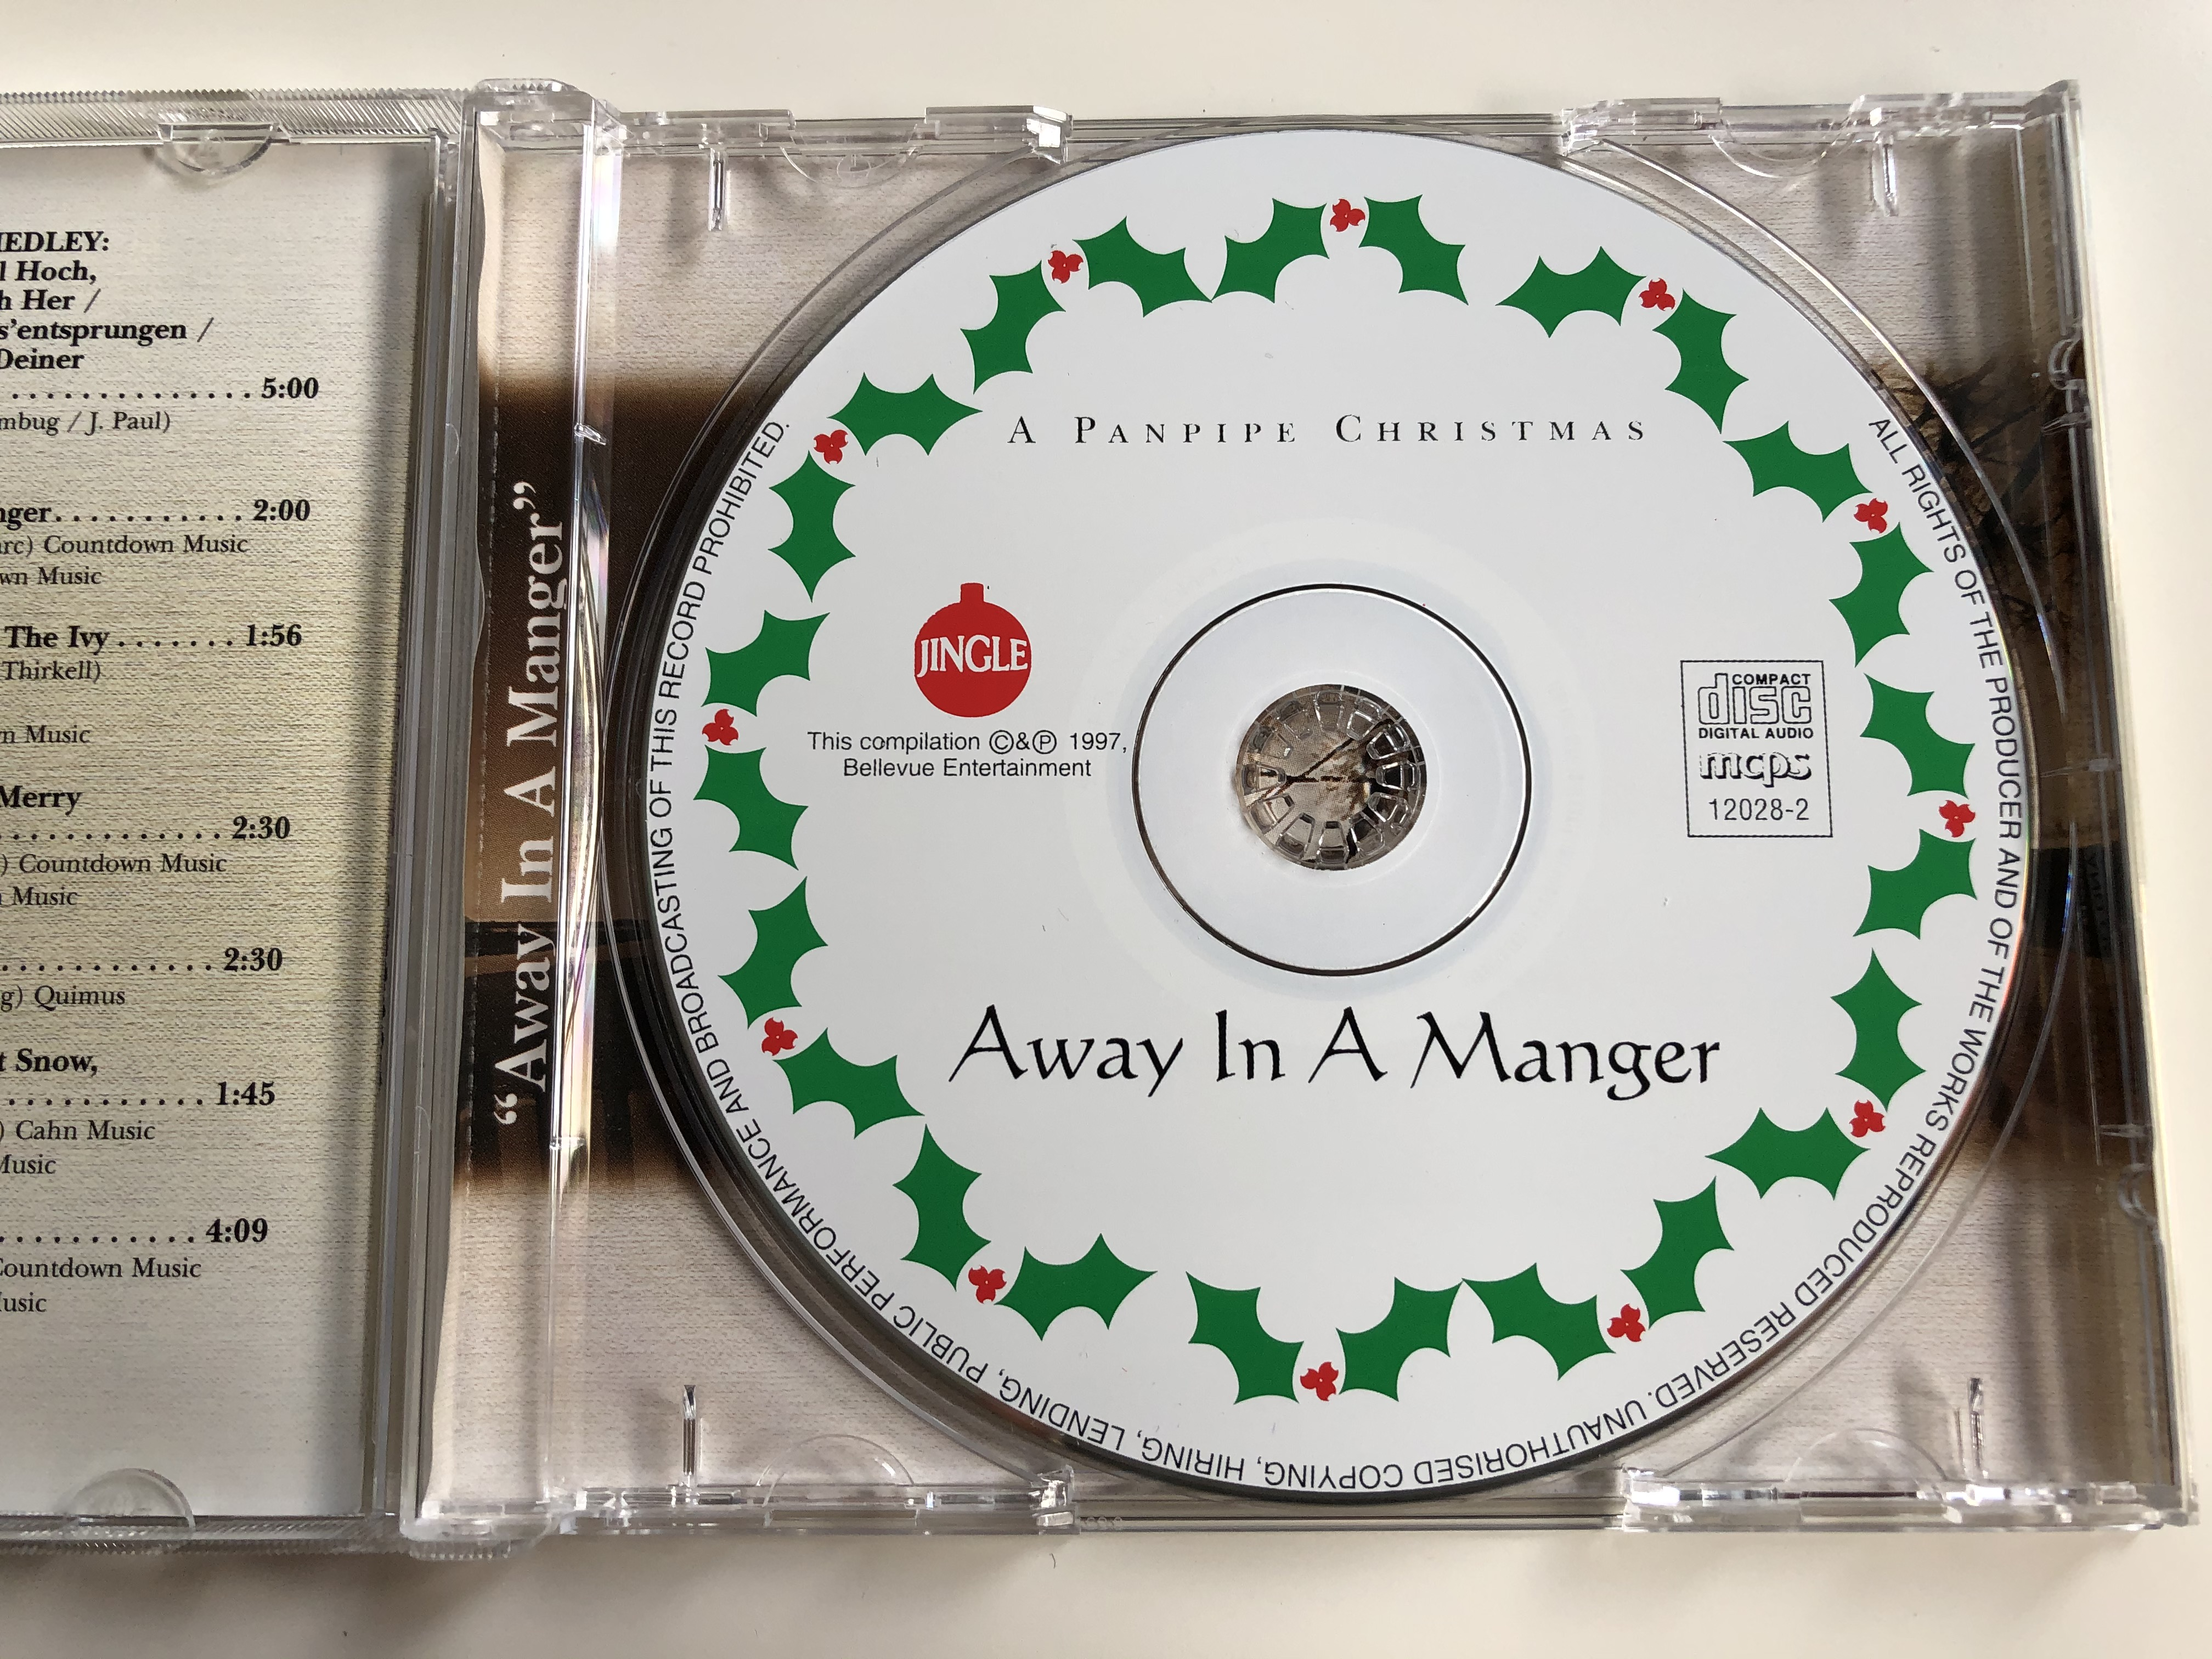 a-panpipe-christmas-away-in-a-manger-the-beautiful-sound-of-the-panpipes-includes-white-christmas-away-in-a-manger-oh-christmas-tree-o-come-all-ye-faithful-jingle-audio-cd-1997-12028-2-3-.jpg